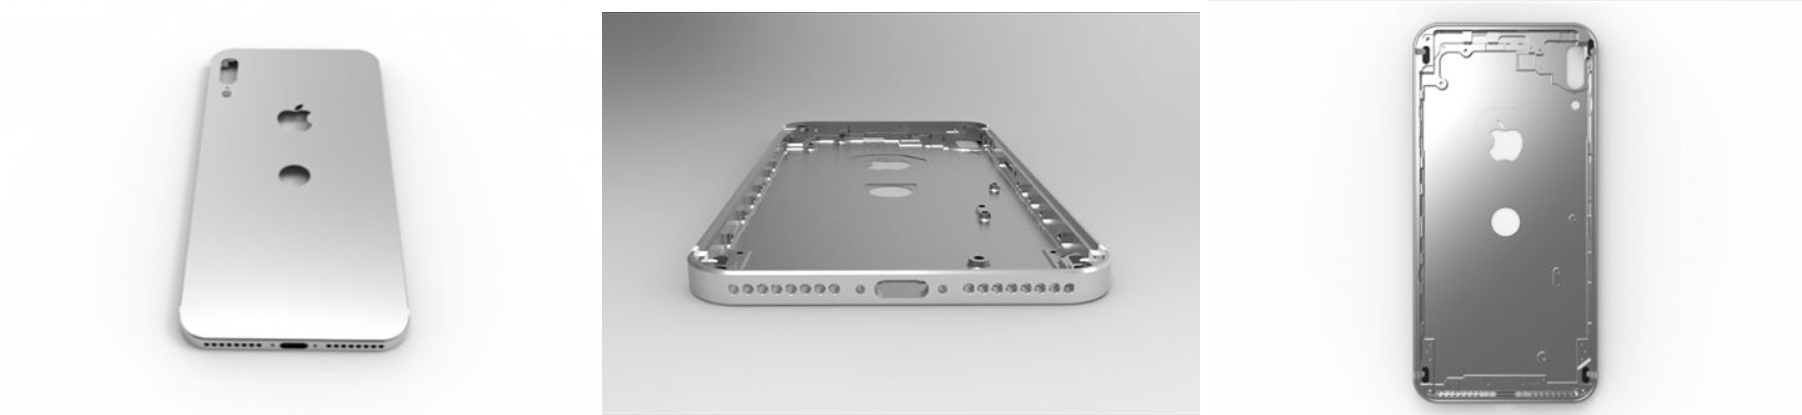 3D model of iPhone 8 casing based on likely fake schematics